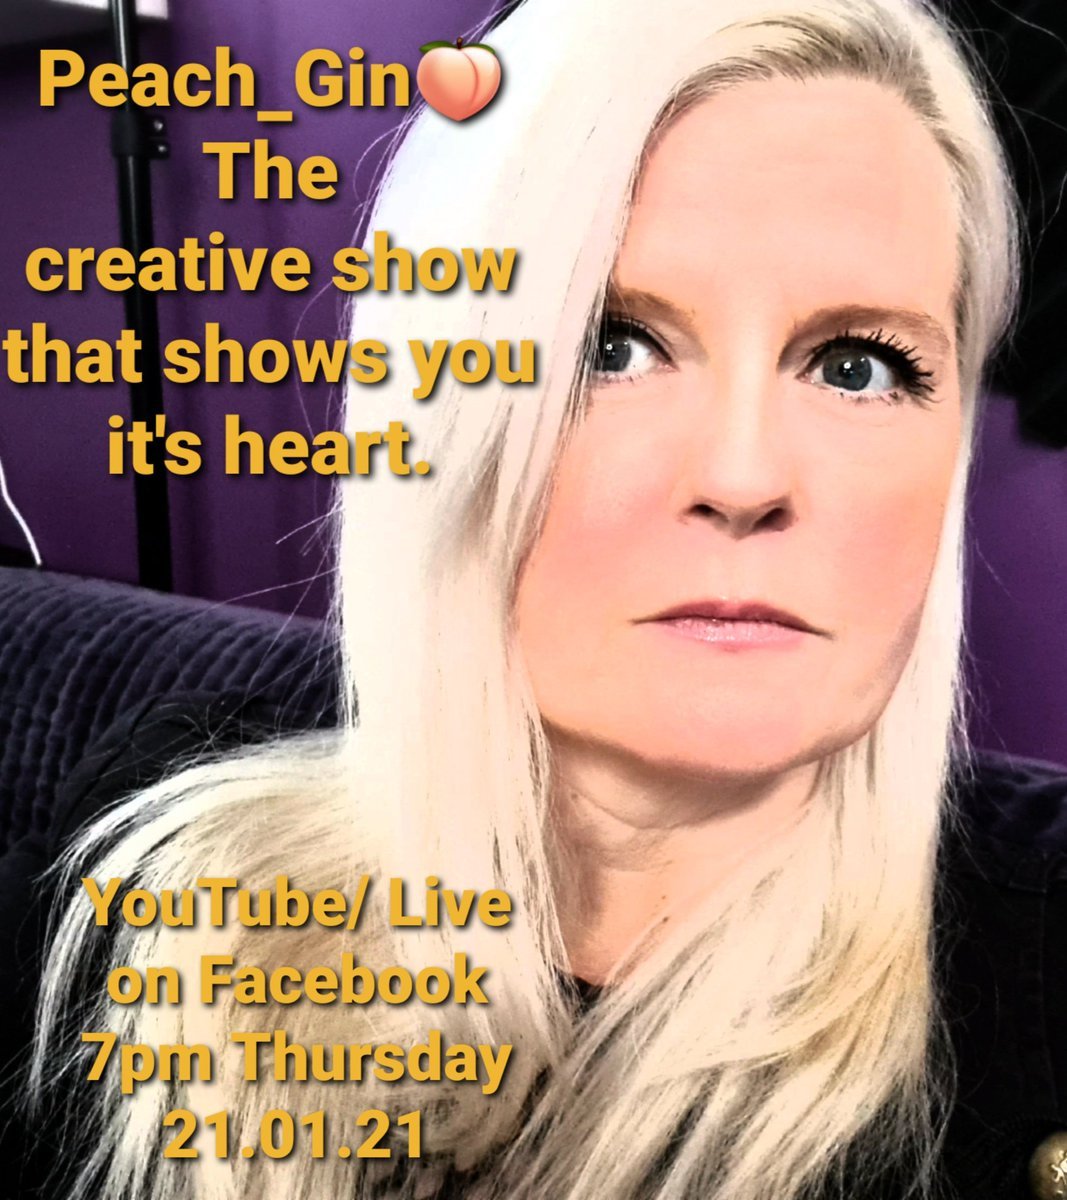 #ThursdayMotivation #YouTube #Peach_Gin #Creative #WeirdIsCool #singer #hope #StreamerCommunity #yungblud #LoveYou @AttacusLuna Getting some great shows together!New music, new ventures and All inspiring.Love41Another people, the Beautiful 2Way pathway🍑🍑🍑